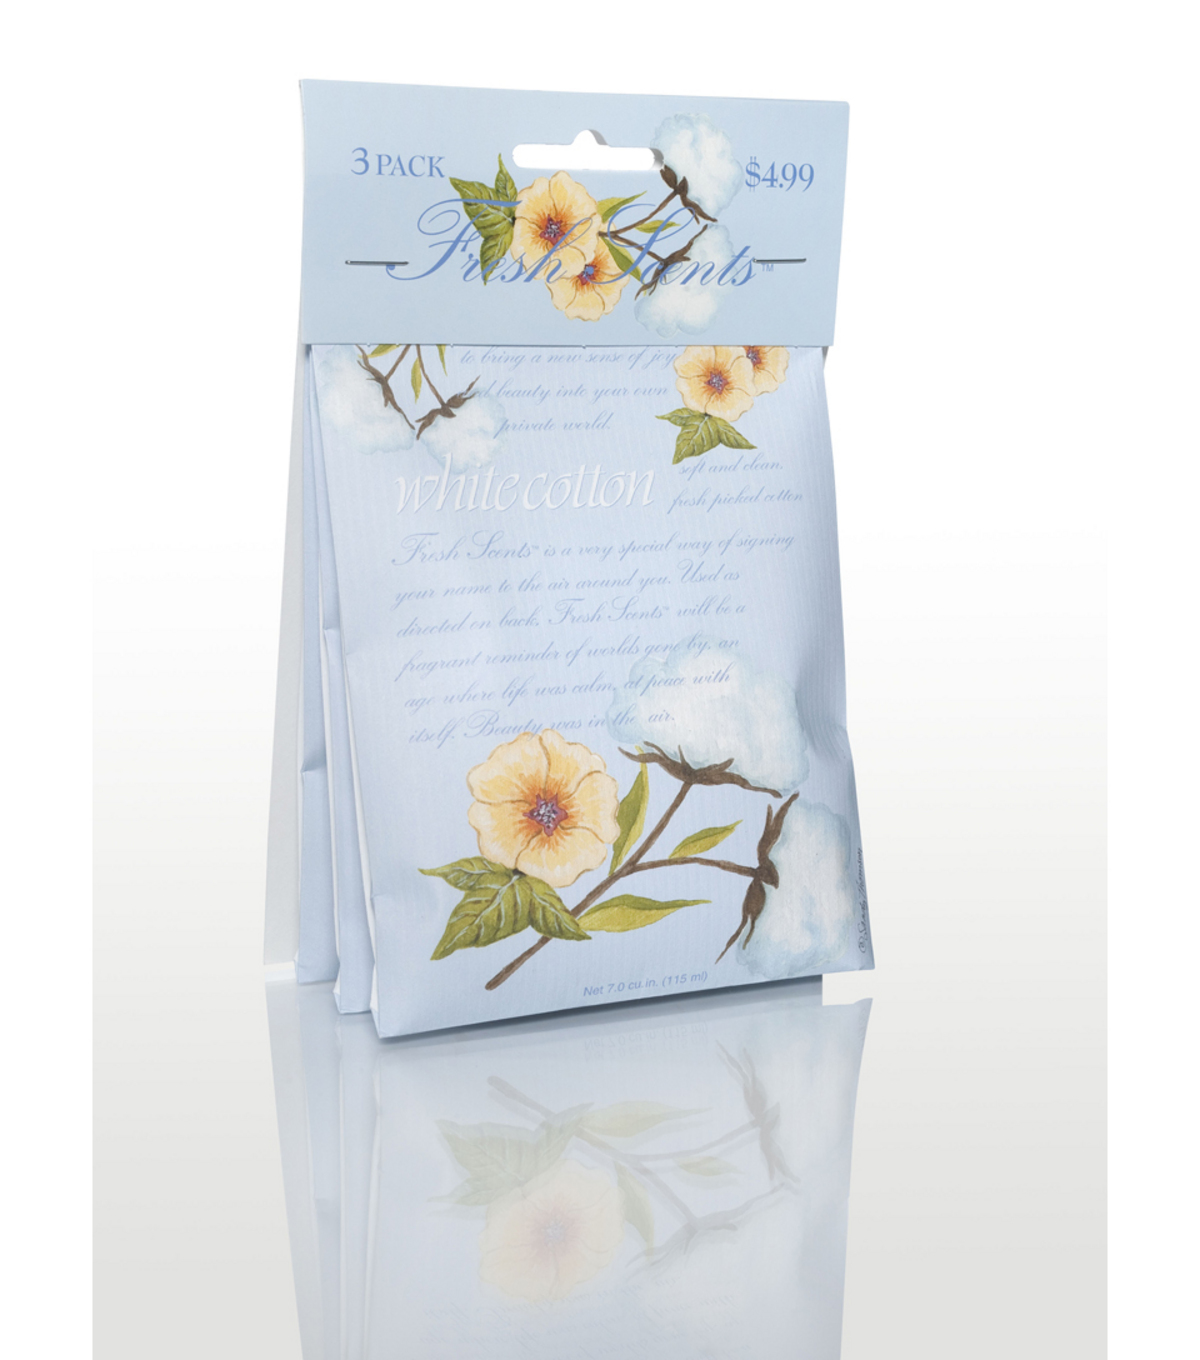 3 Pack Whte Cotton Sachet